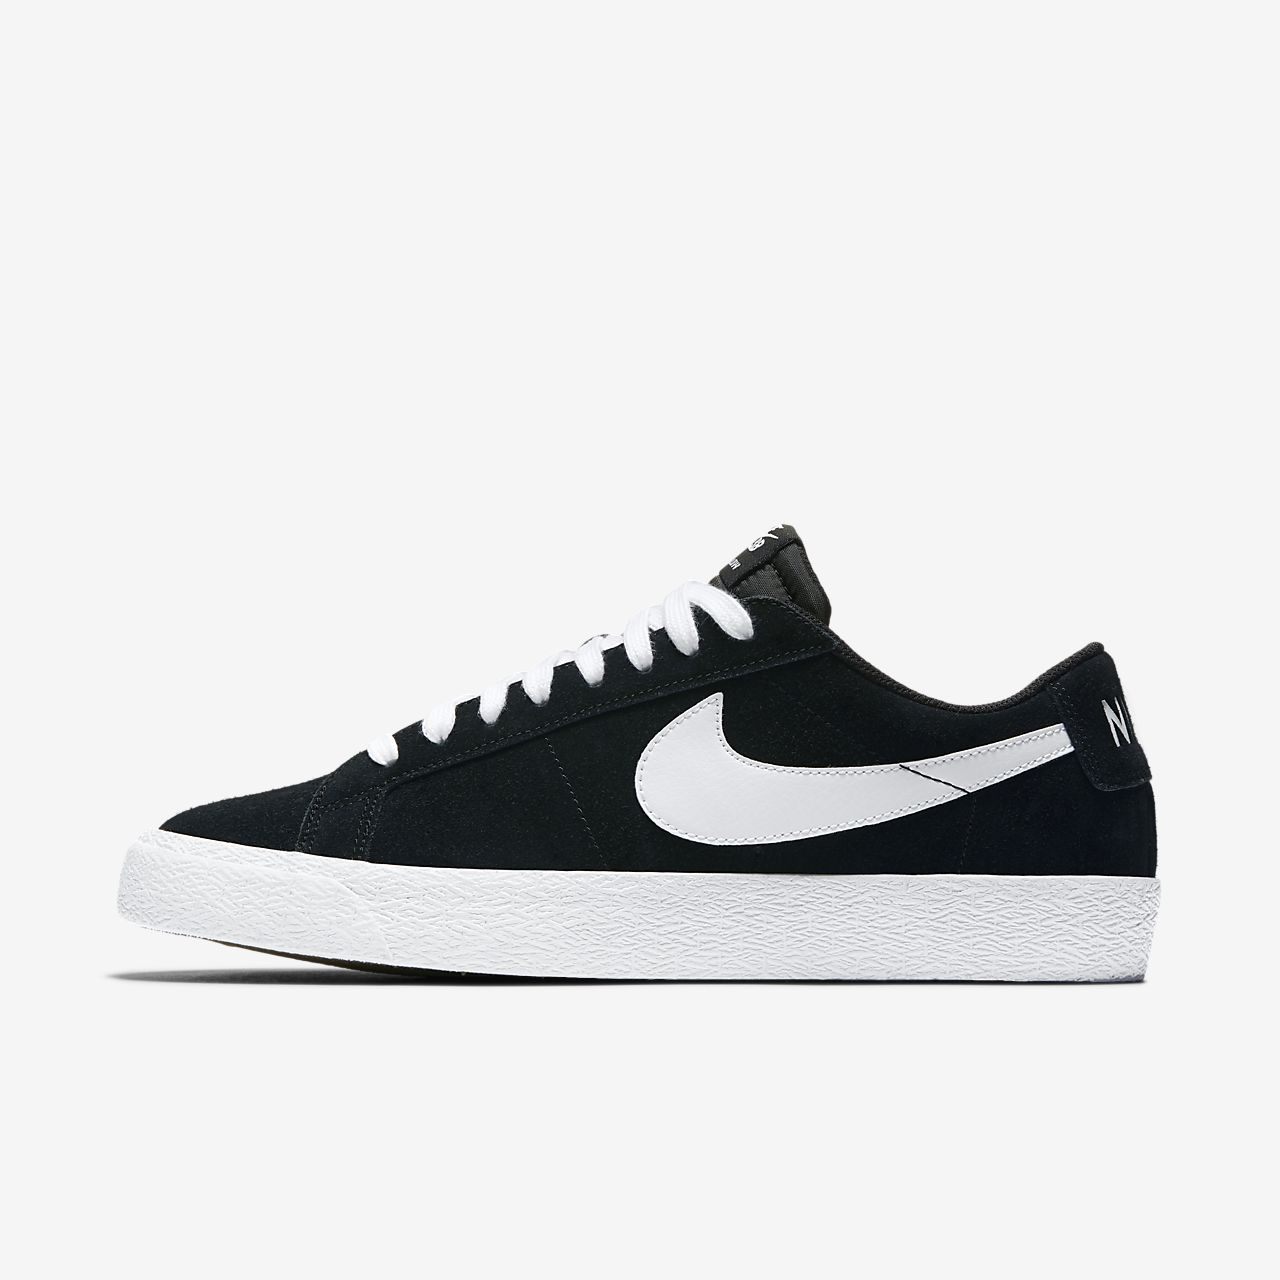 reputable site 9bcd4 eb7c9 ... Nike SB Blazer Zoom Low Mens Skateboarding Shoe